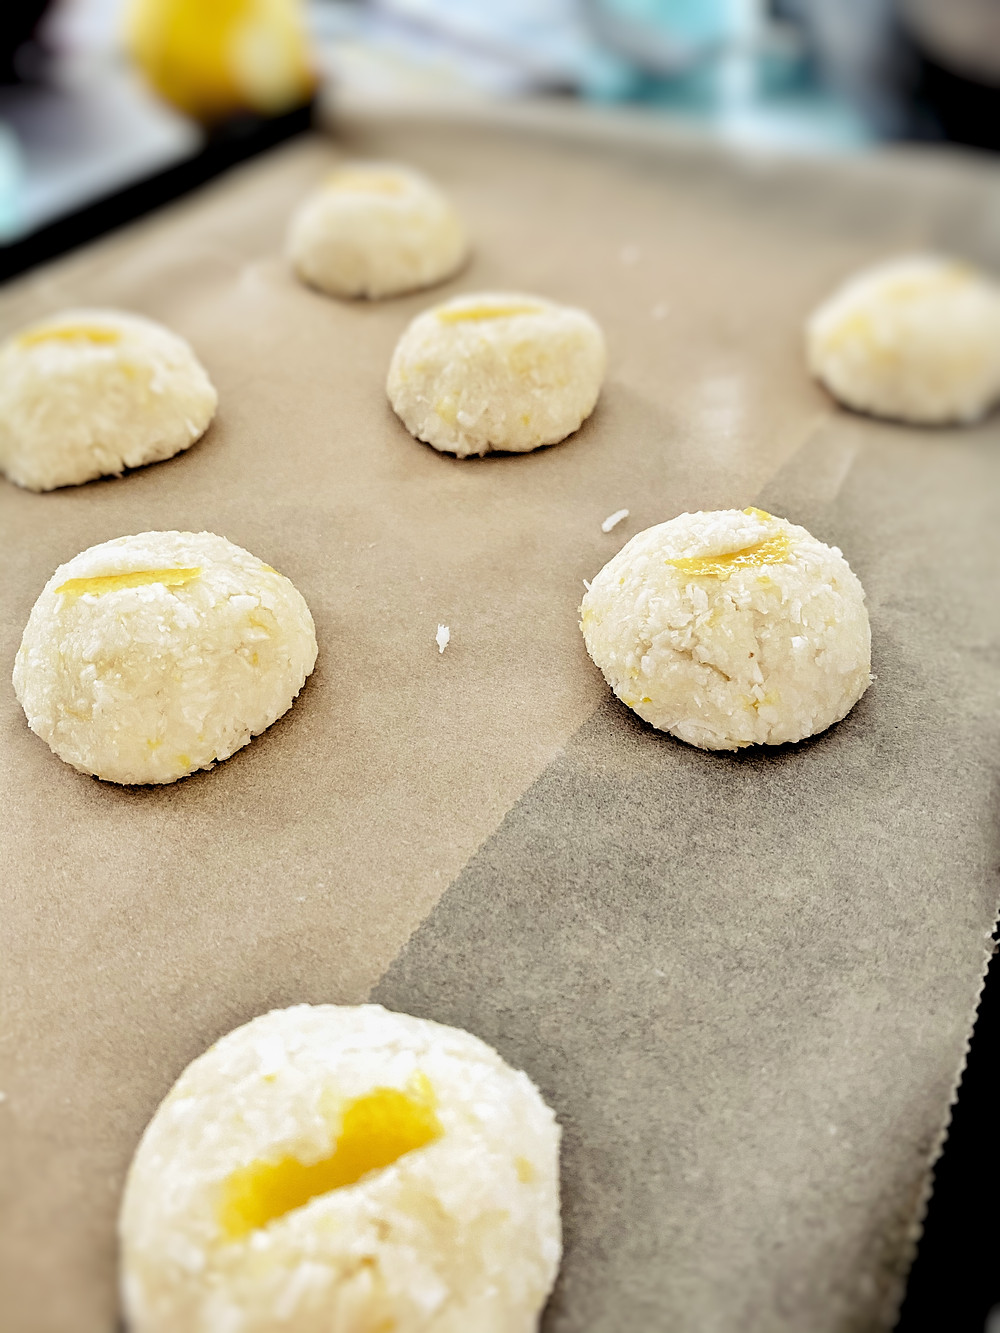 Keto and vegan friendly lemon macaroon treat by Hormone specialist and nutritionist Kay Ali